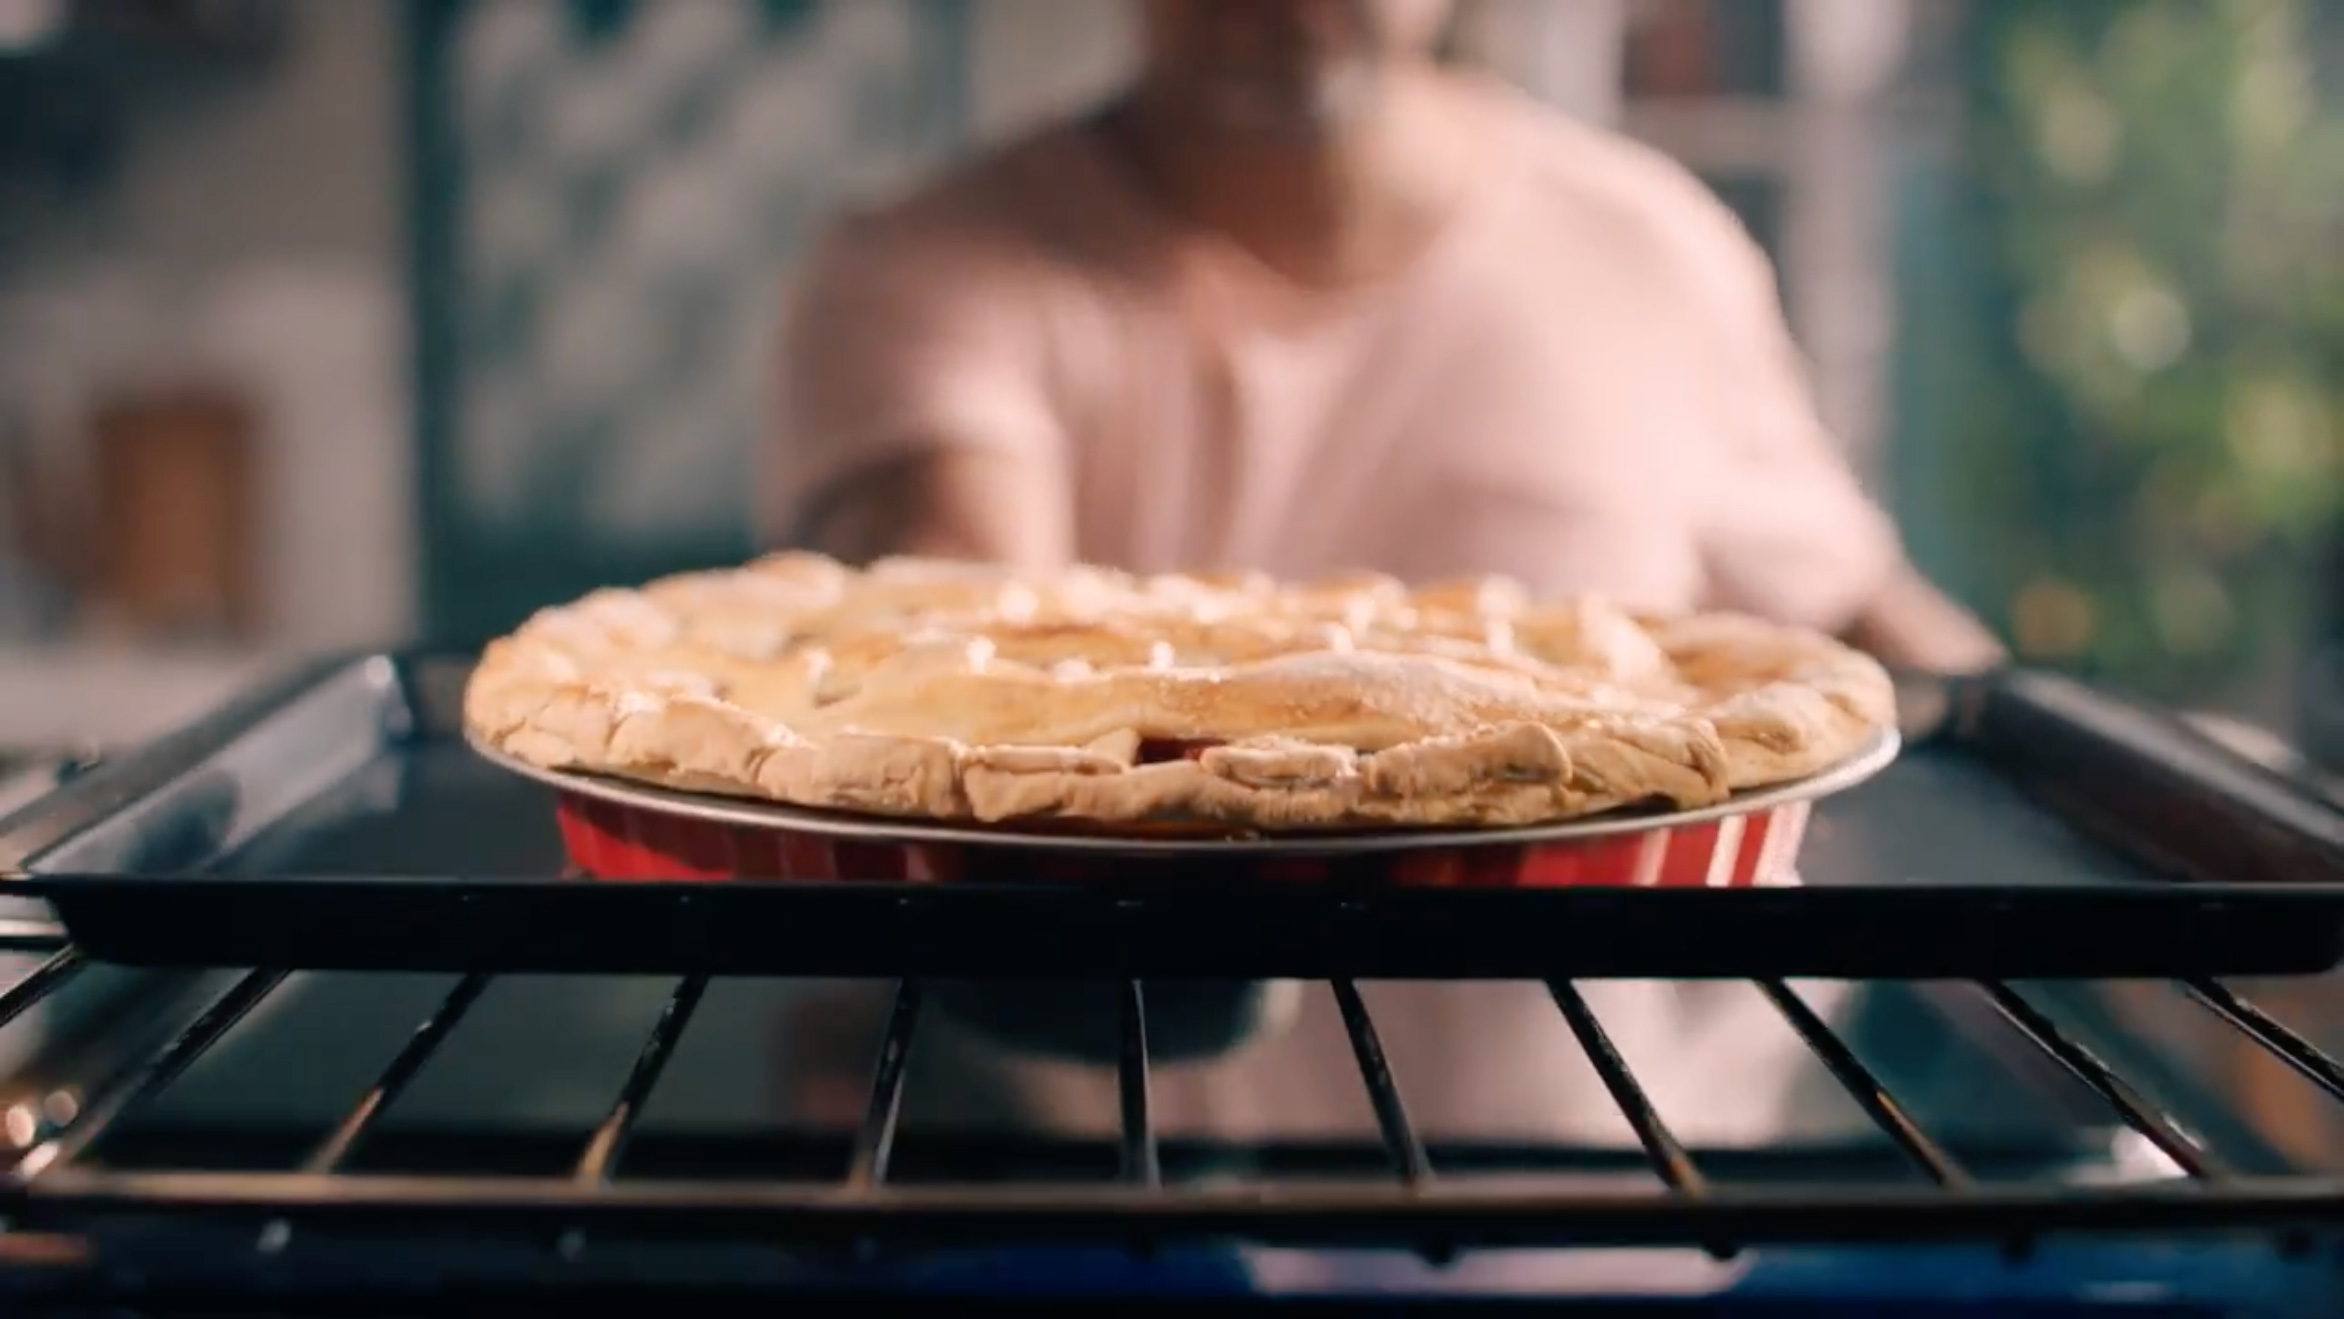 A person pulling out a pie from the oven.